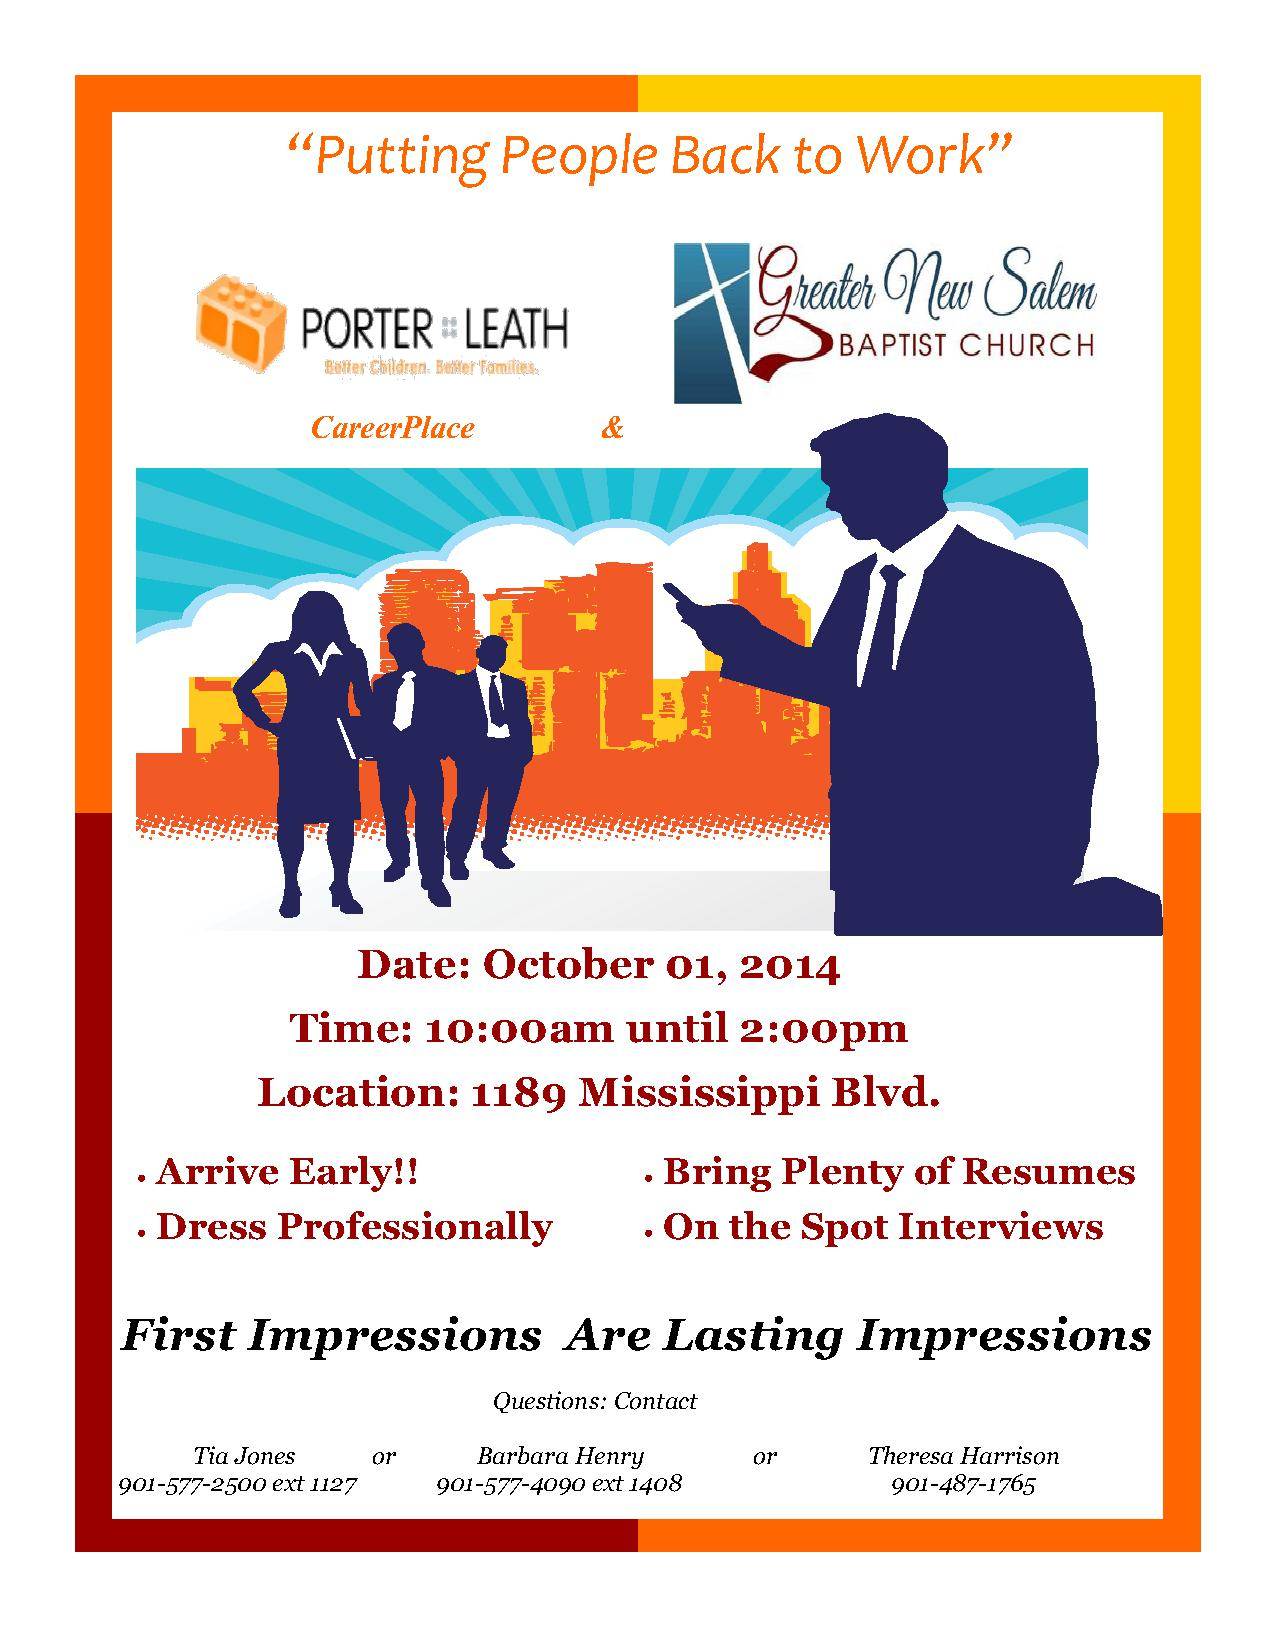 job fair 10 1 14 sponsored by porter leath career place porter leath job fair flyer 10 01 2014 1